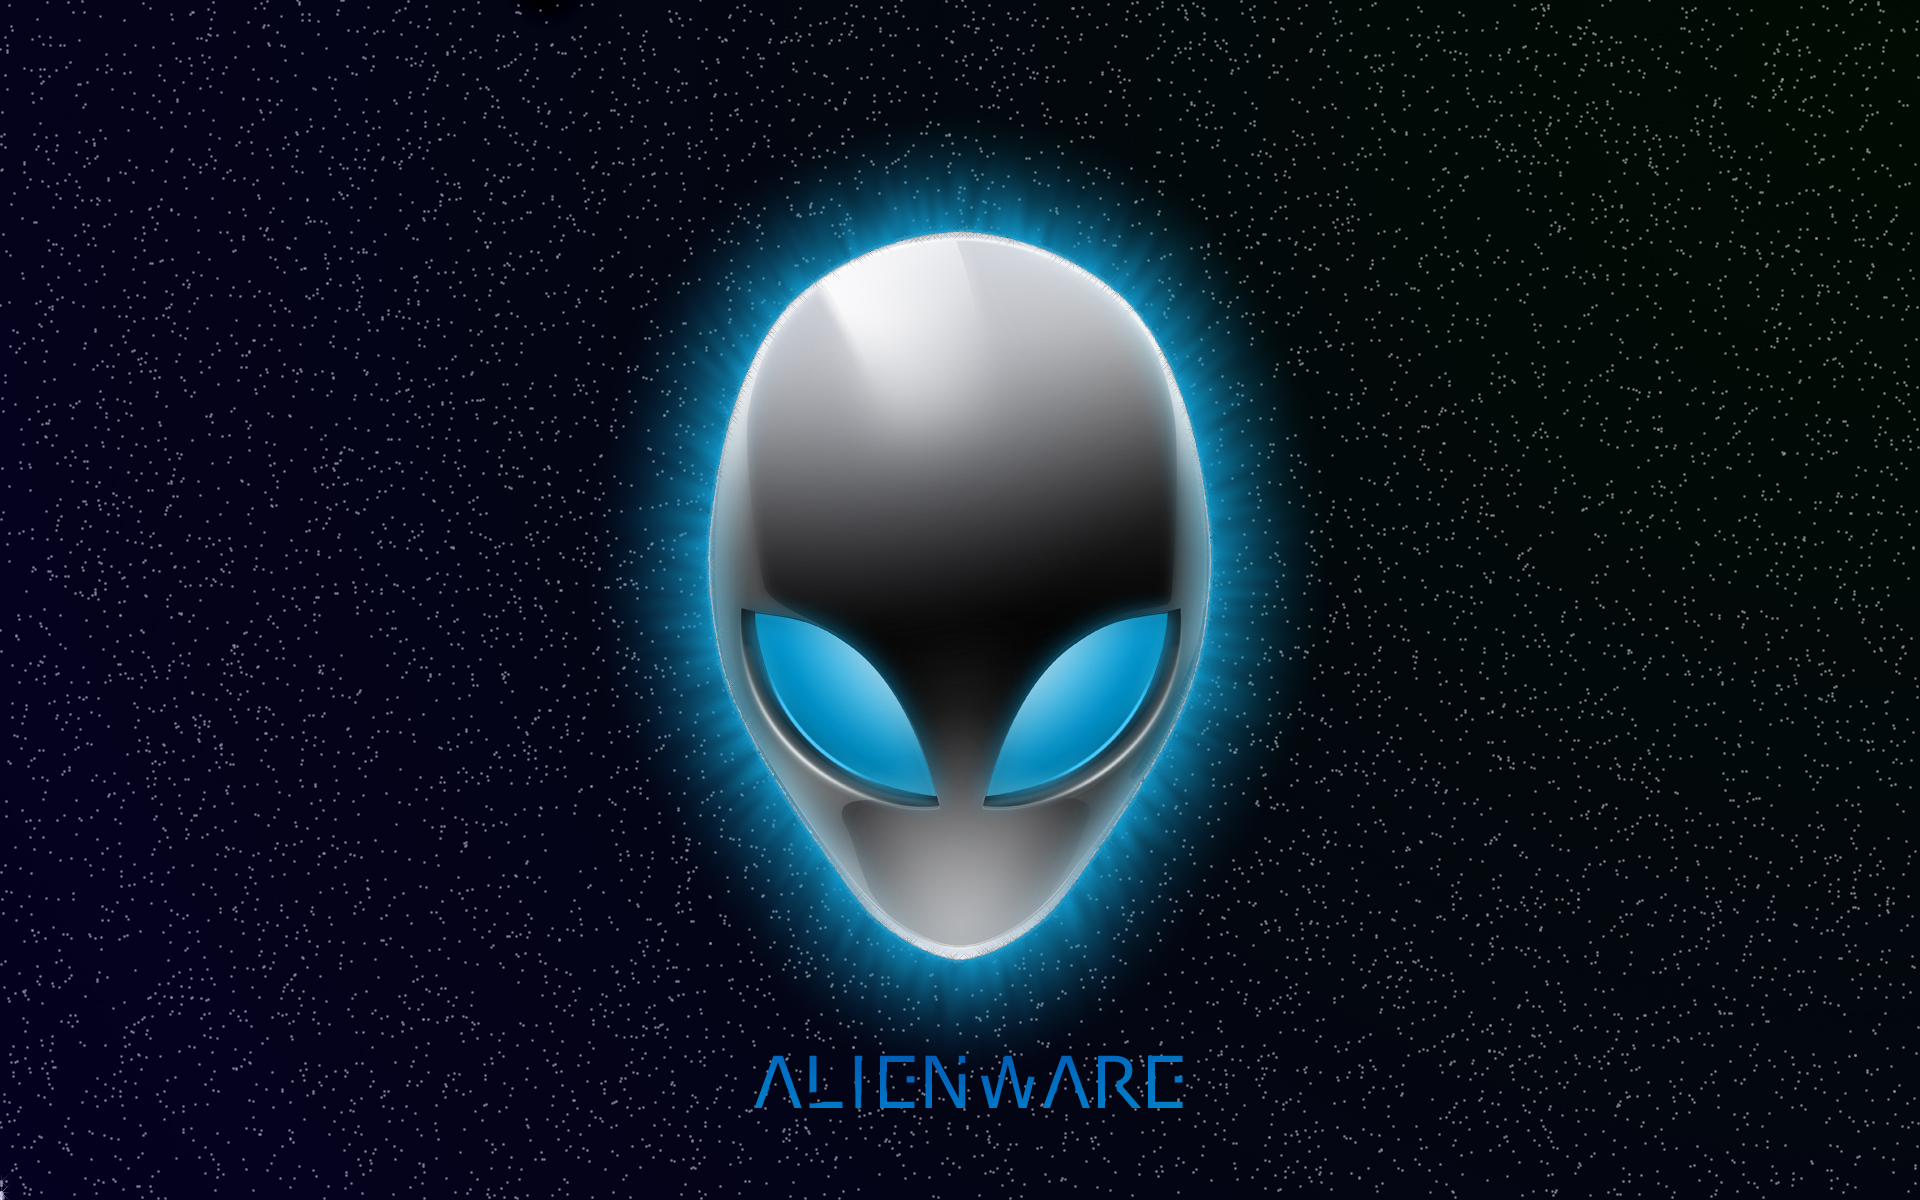 Alienware wallpapers for windows 7 wallpapersafari - Alienware Wallpaper 1080p Wallpapersafari